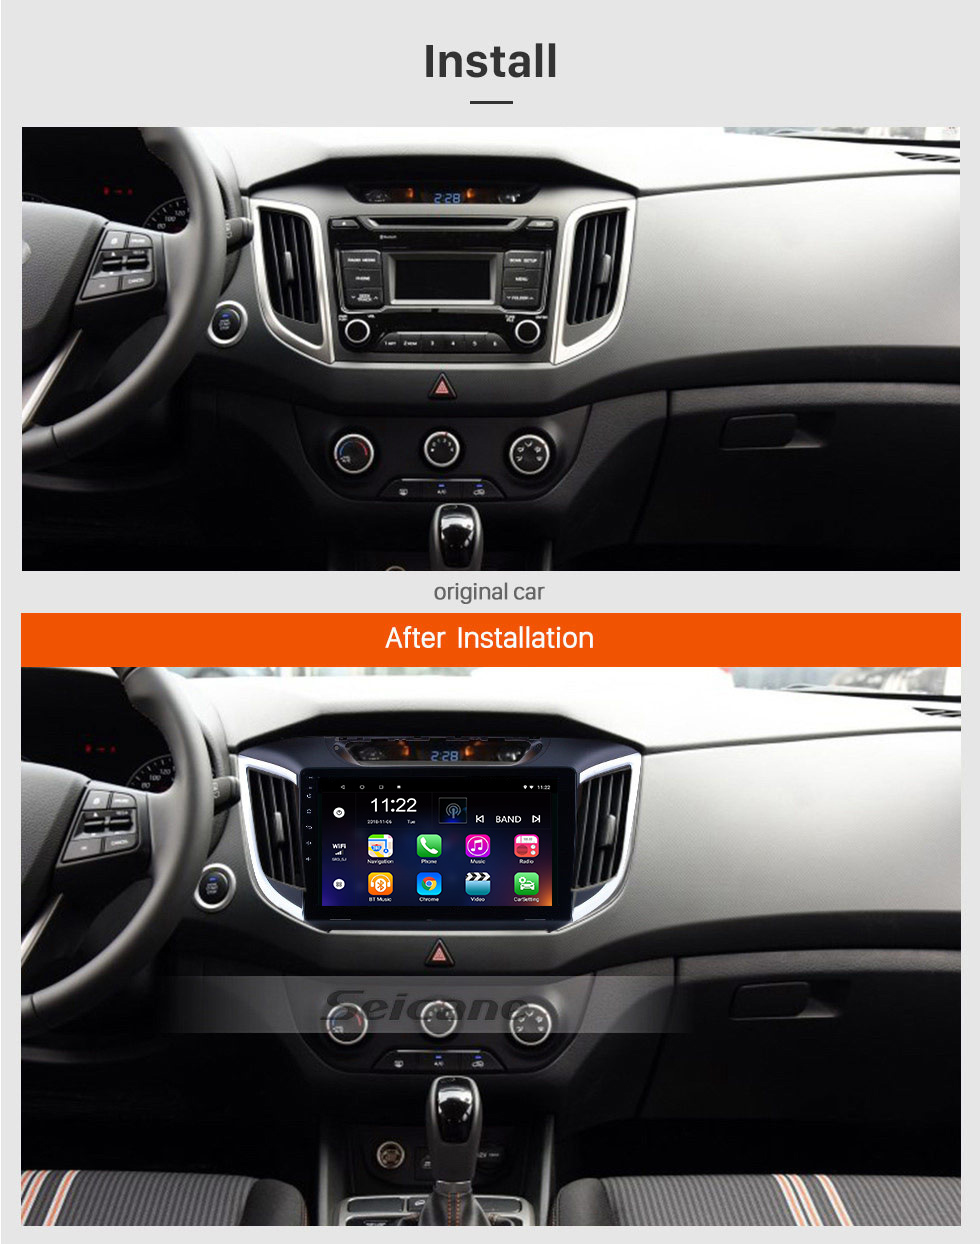 Seicane 2014 2015 Hyundai IX25 Android 8.1 10.1 inch HD touchscreen Radio GPS Navi USB Bluetooth WIFI OBD2 Mirror Link Rearview camera